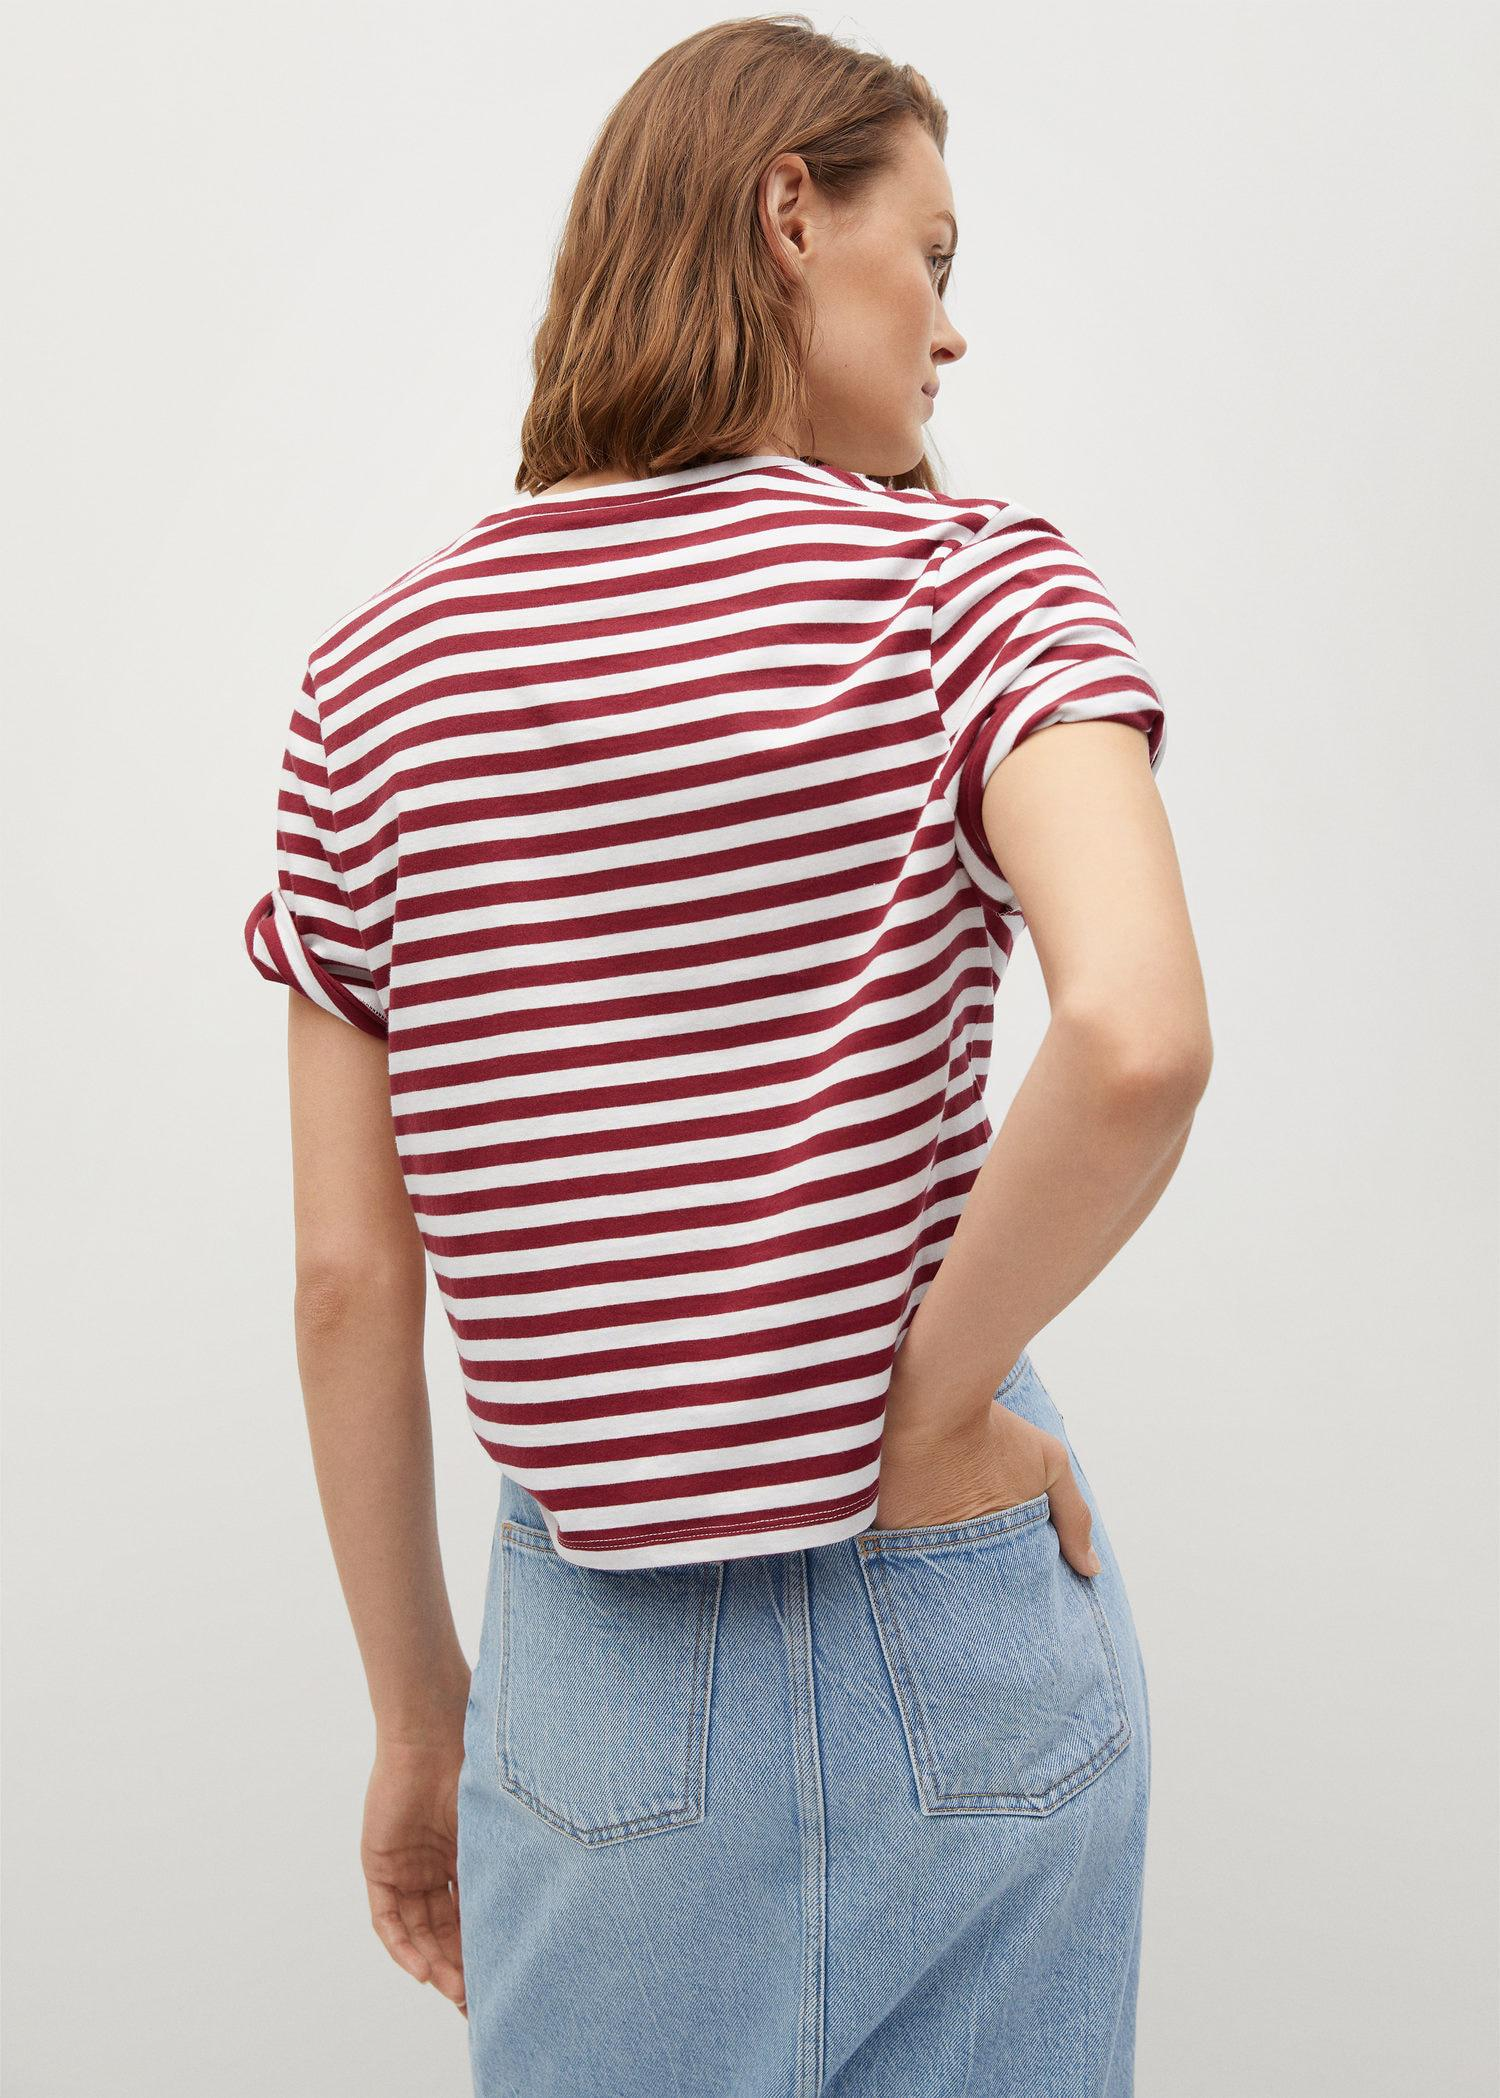 100% recycled cotton t-shirt 2